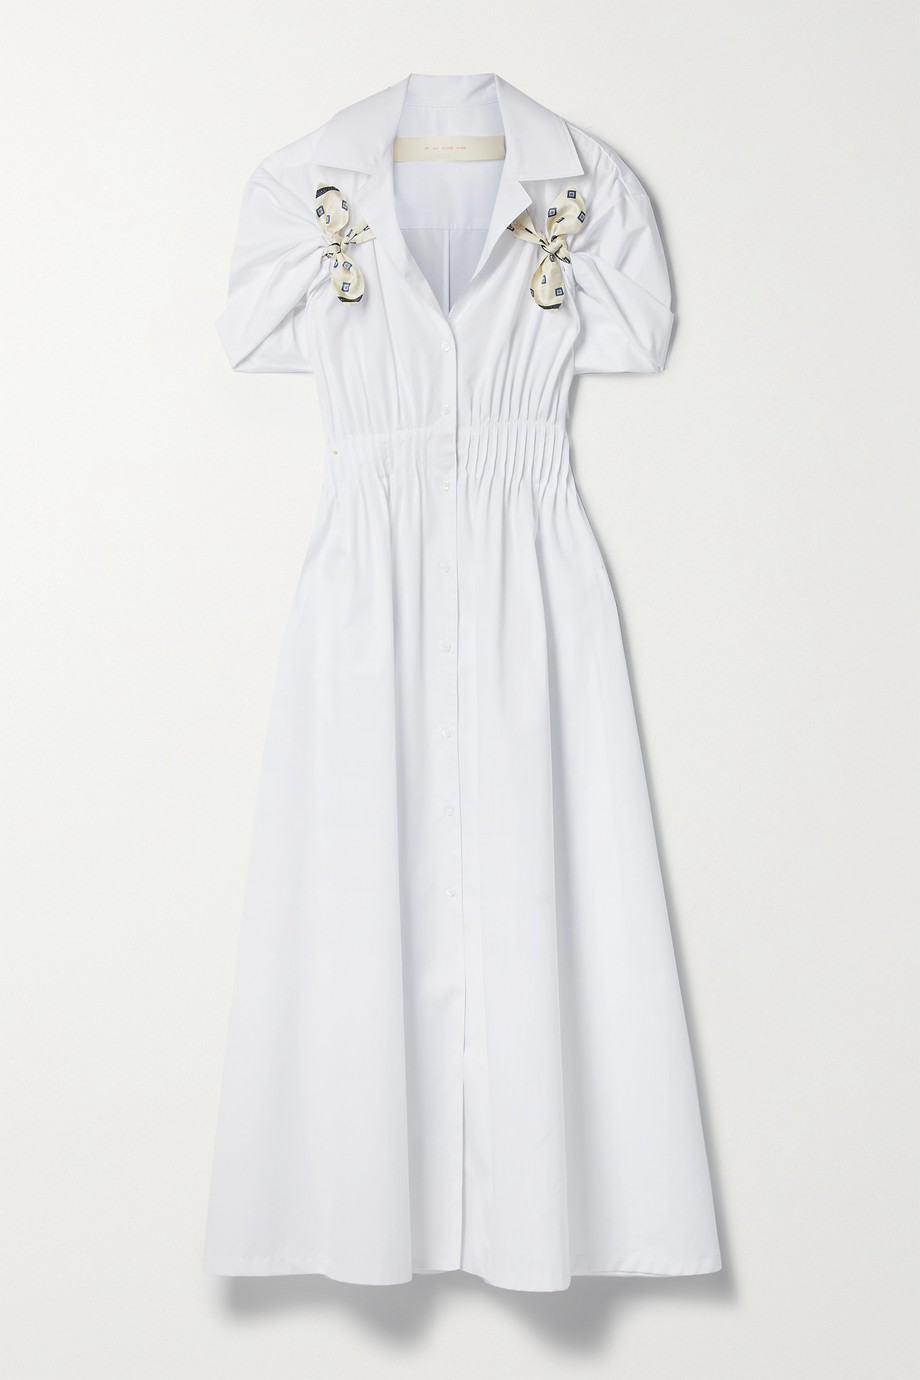 Rosie Assoulin By Any Other Name silk twill-trimmed cotton-poplin shirt dress